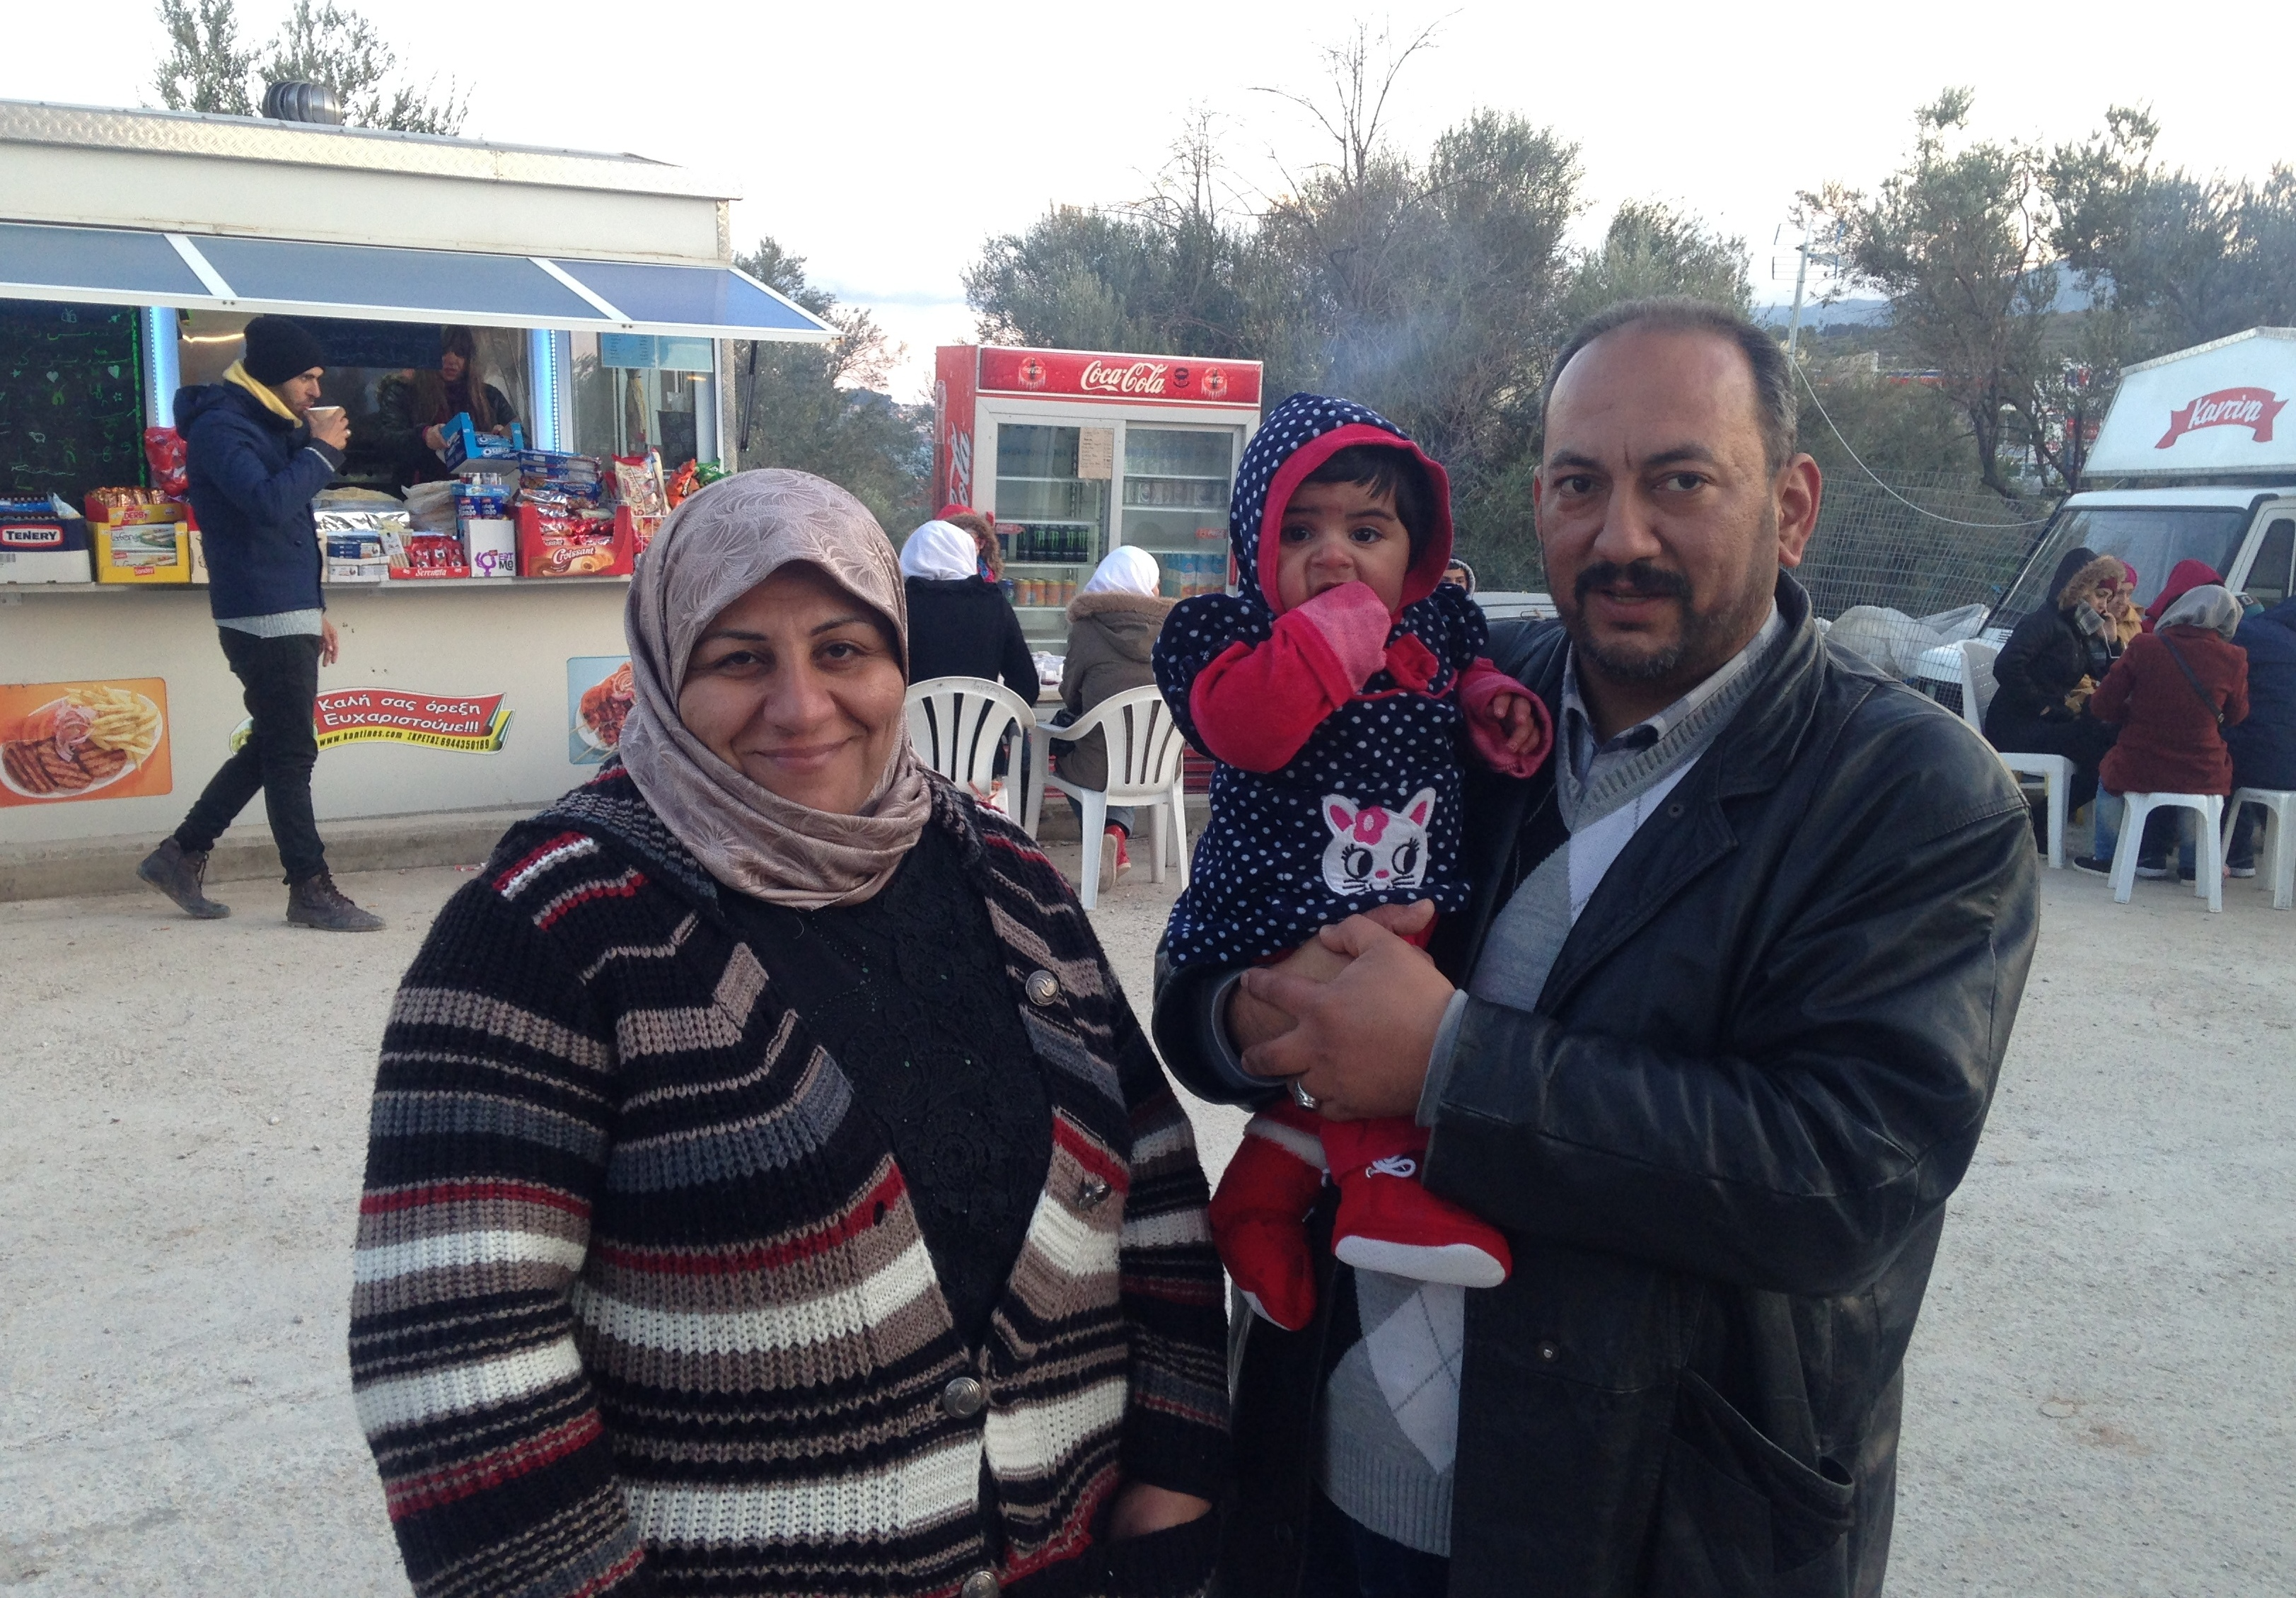 After Drownings, Greece-Bound Migrants Who Survived The Journey